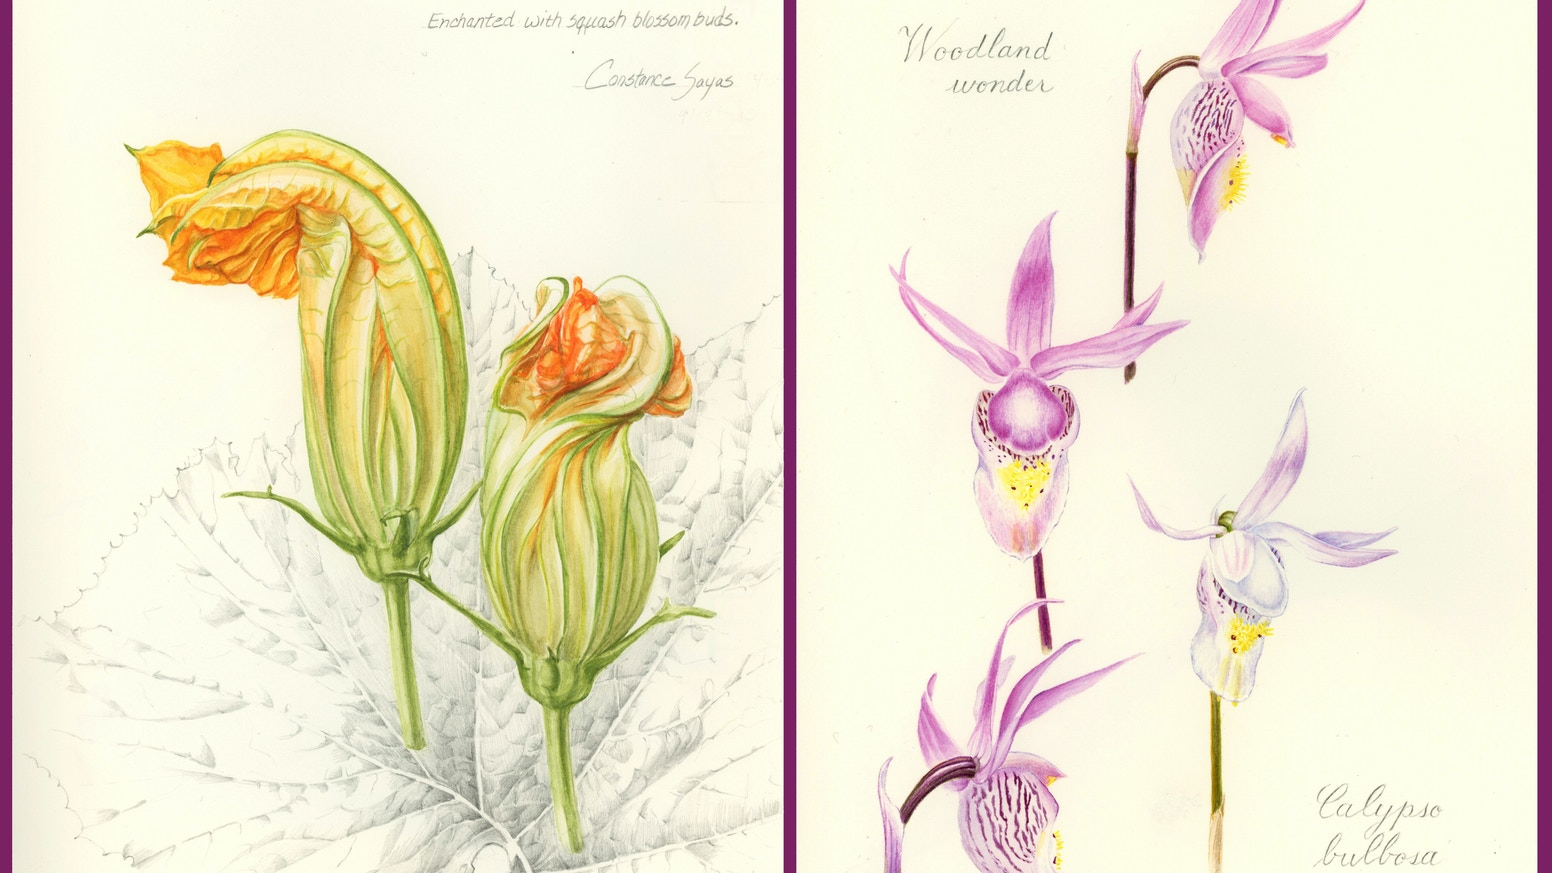 Sketchbook with 76 illustrations by students and instructors representing the incredible artistry and talent at Denver Botanic Gardens.